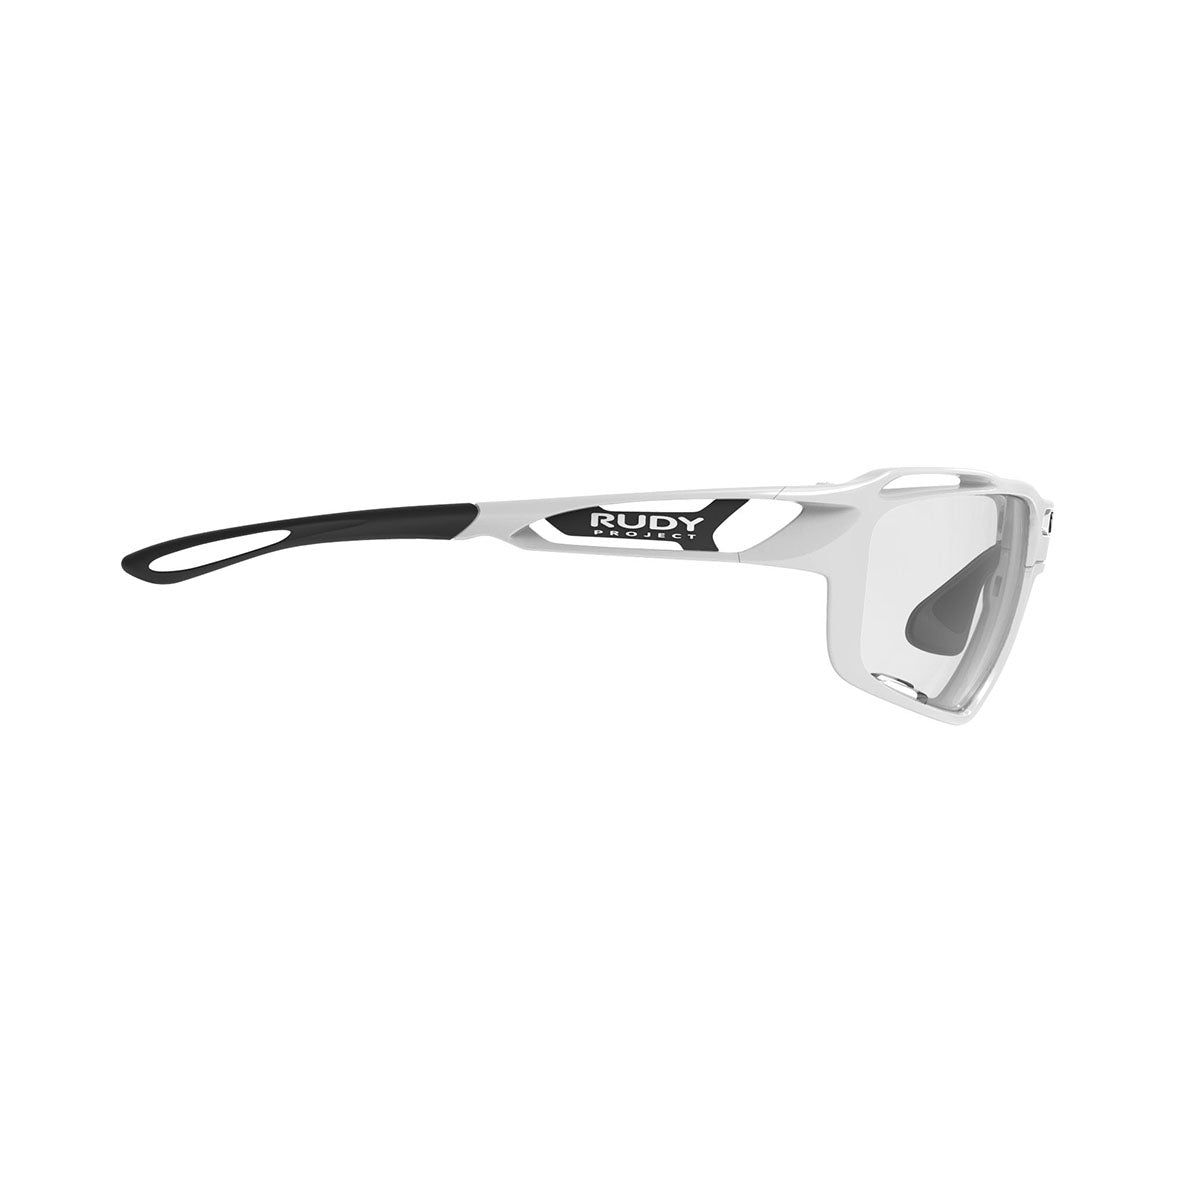 Rudy Project - Sintryx - frame color: White Gloss - lens color: ImpactX-2 Photochromic Clear to Black - Bumper Color:  - photo angle: Side Variant Hover Image